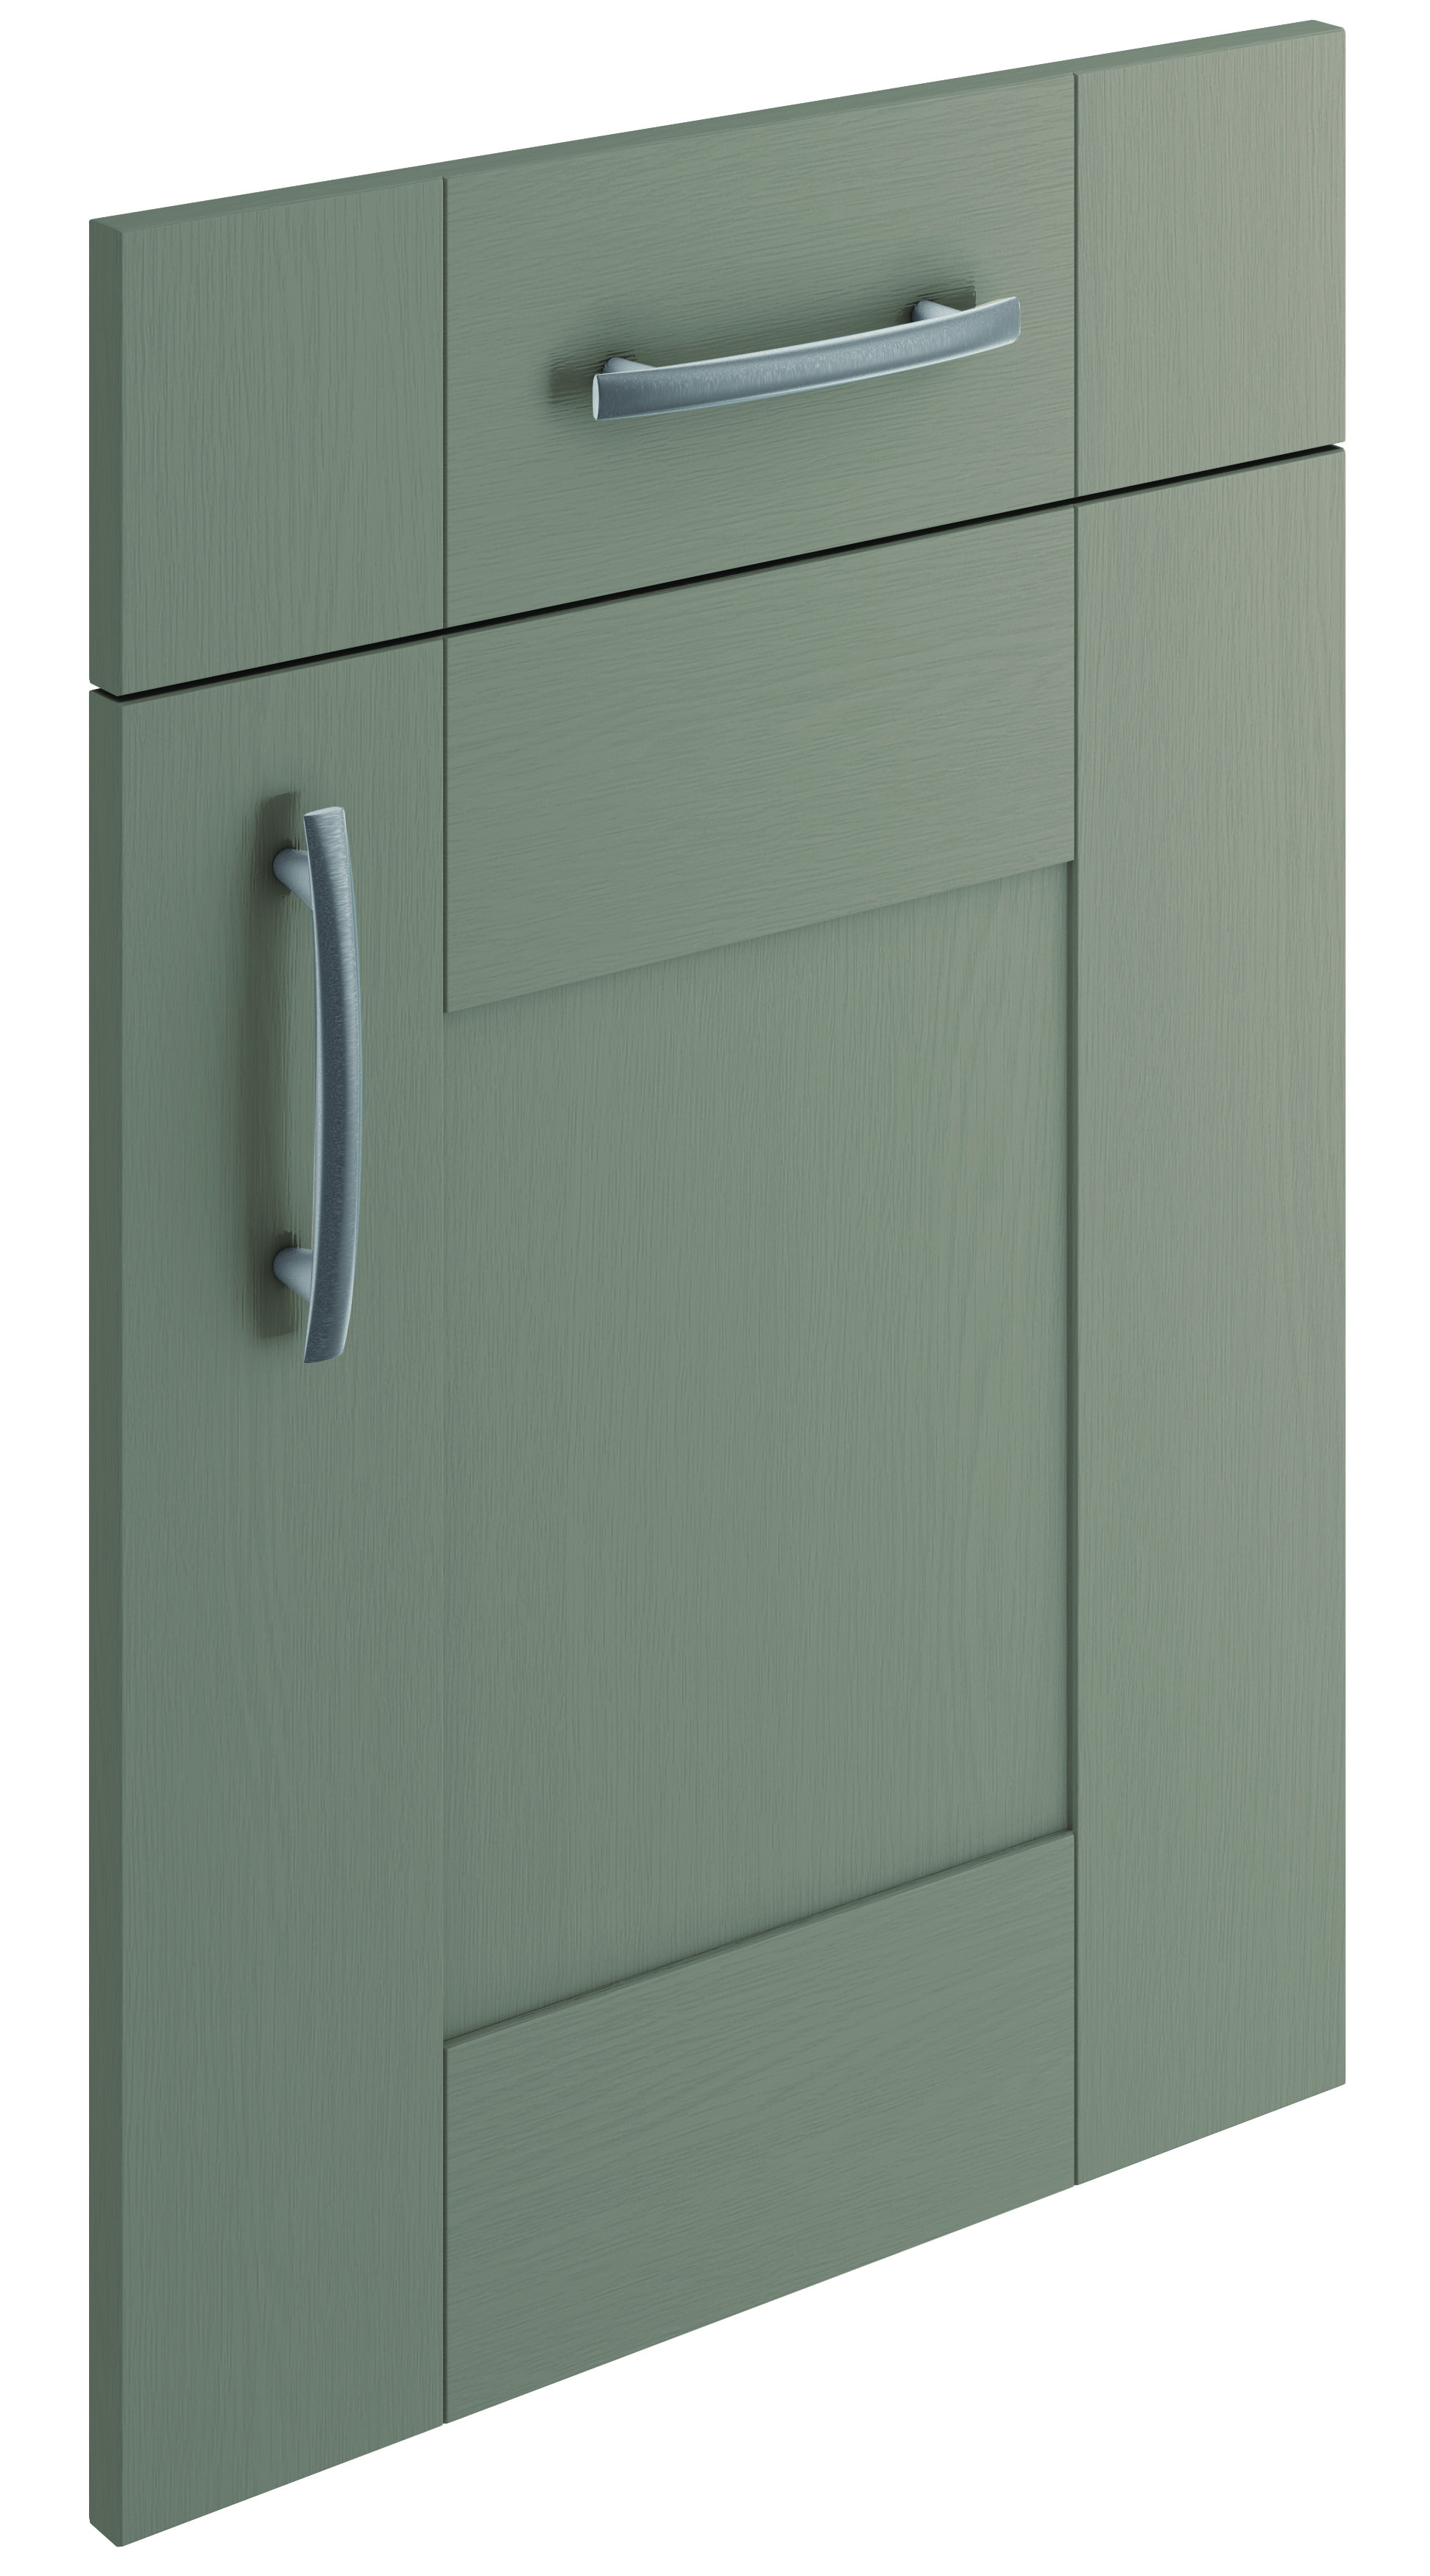 Mirano Cartmel Kitchen Painted Traditional Classic Timber Oak Matte Brown Grey Tongue Groove Shaker Door